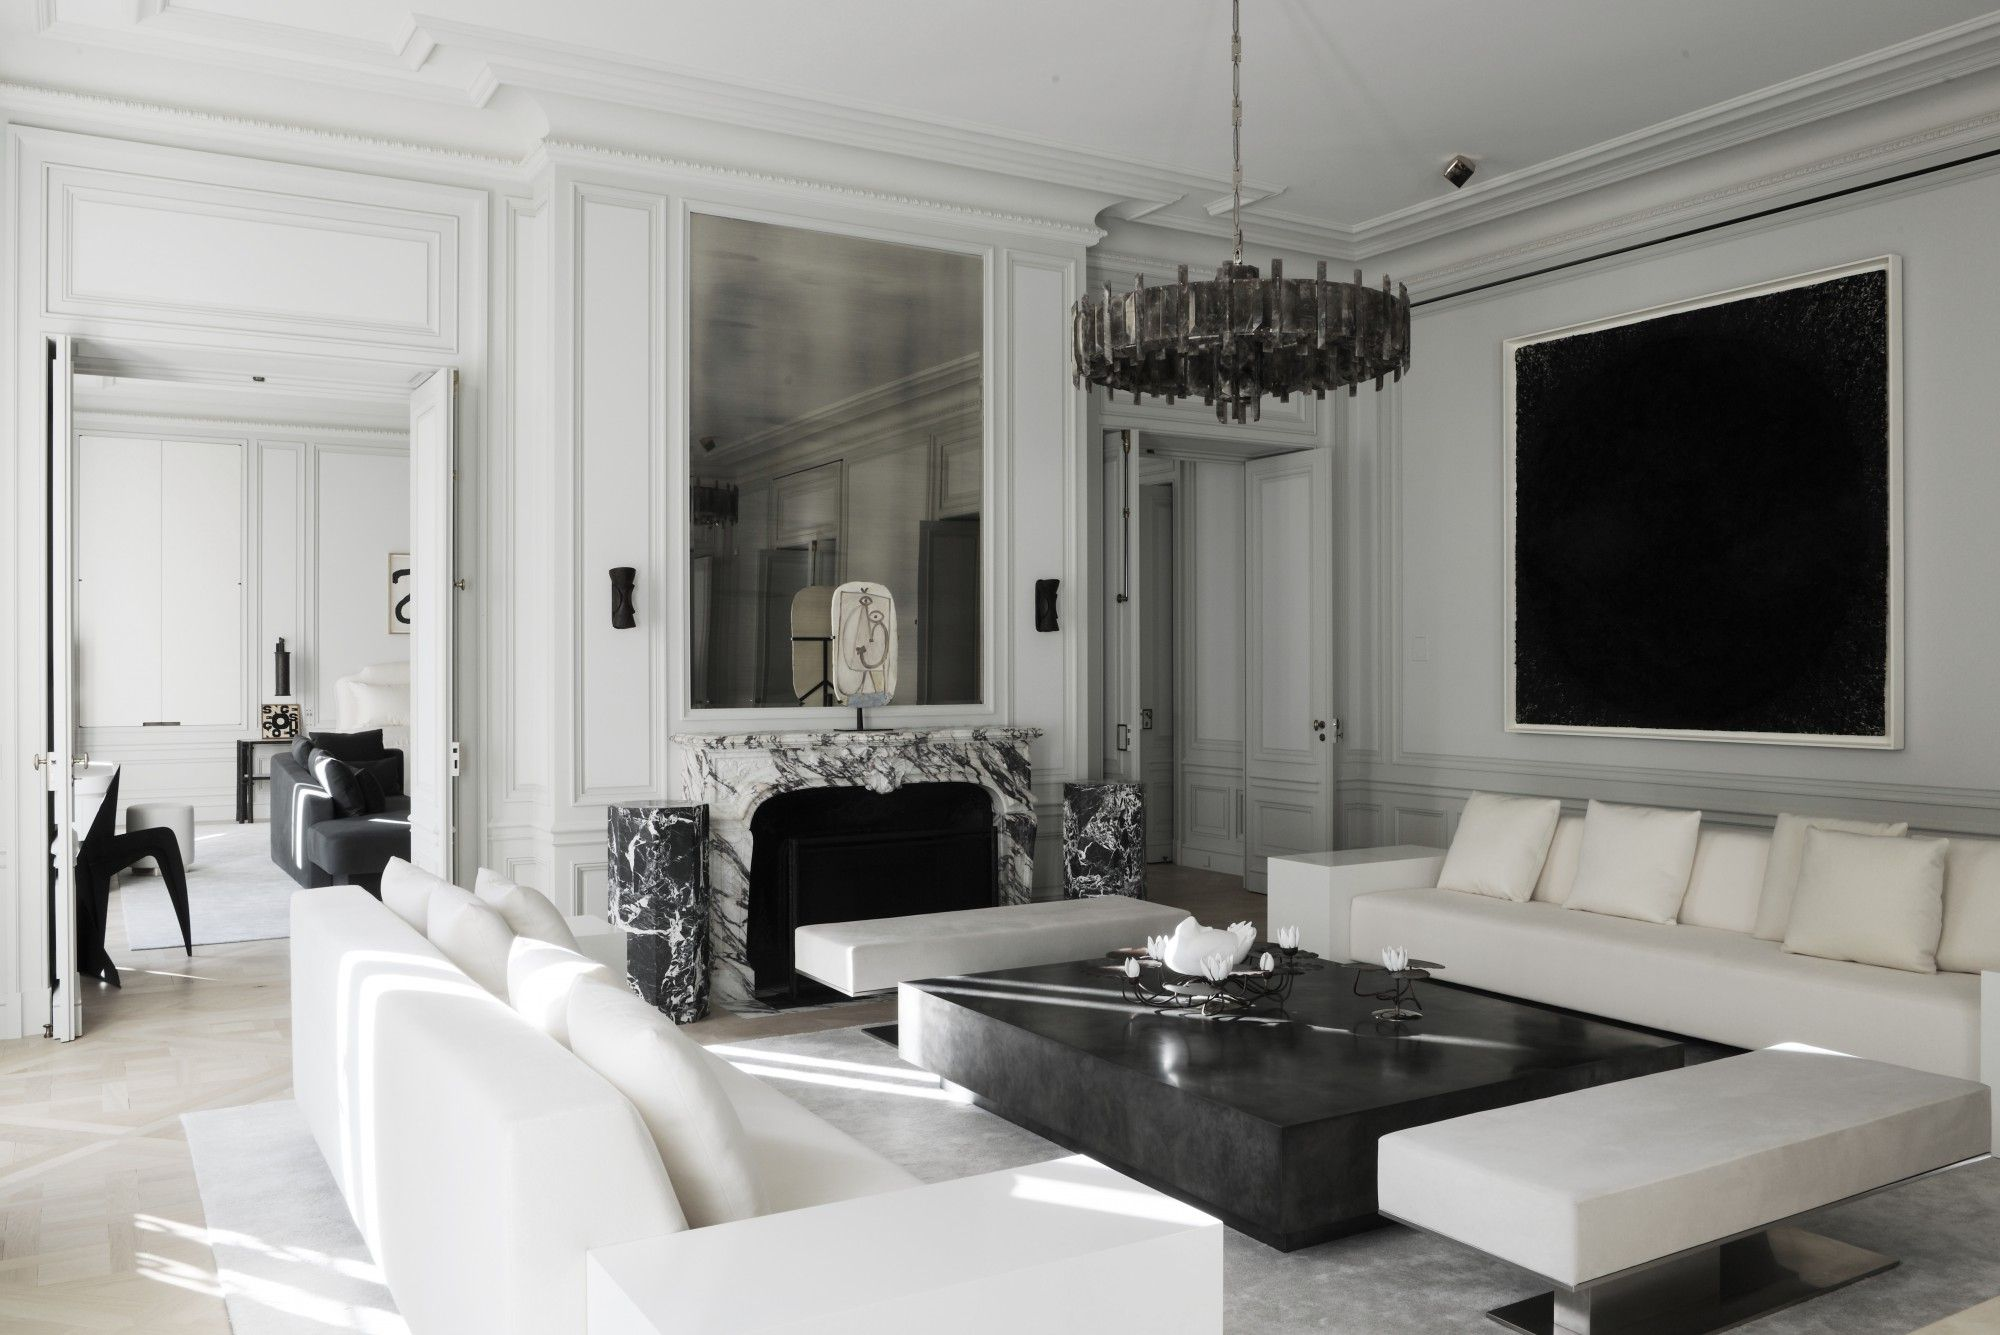 joseph dirand architecture montaigne salons luxueux on beautiful modern black white living room inspired id=66442